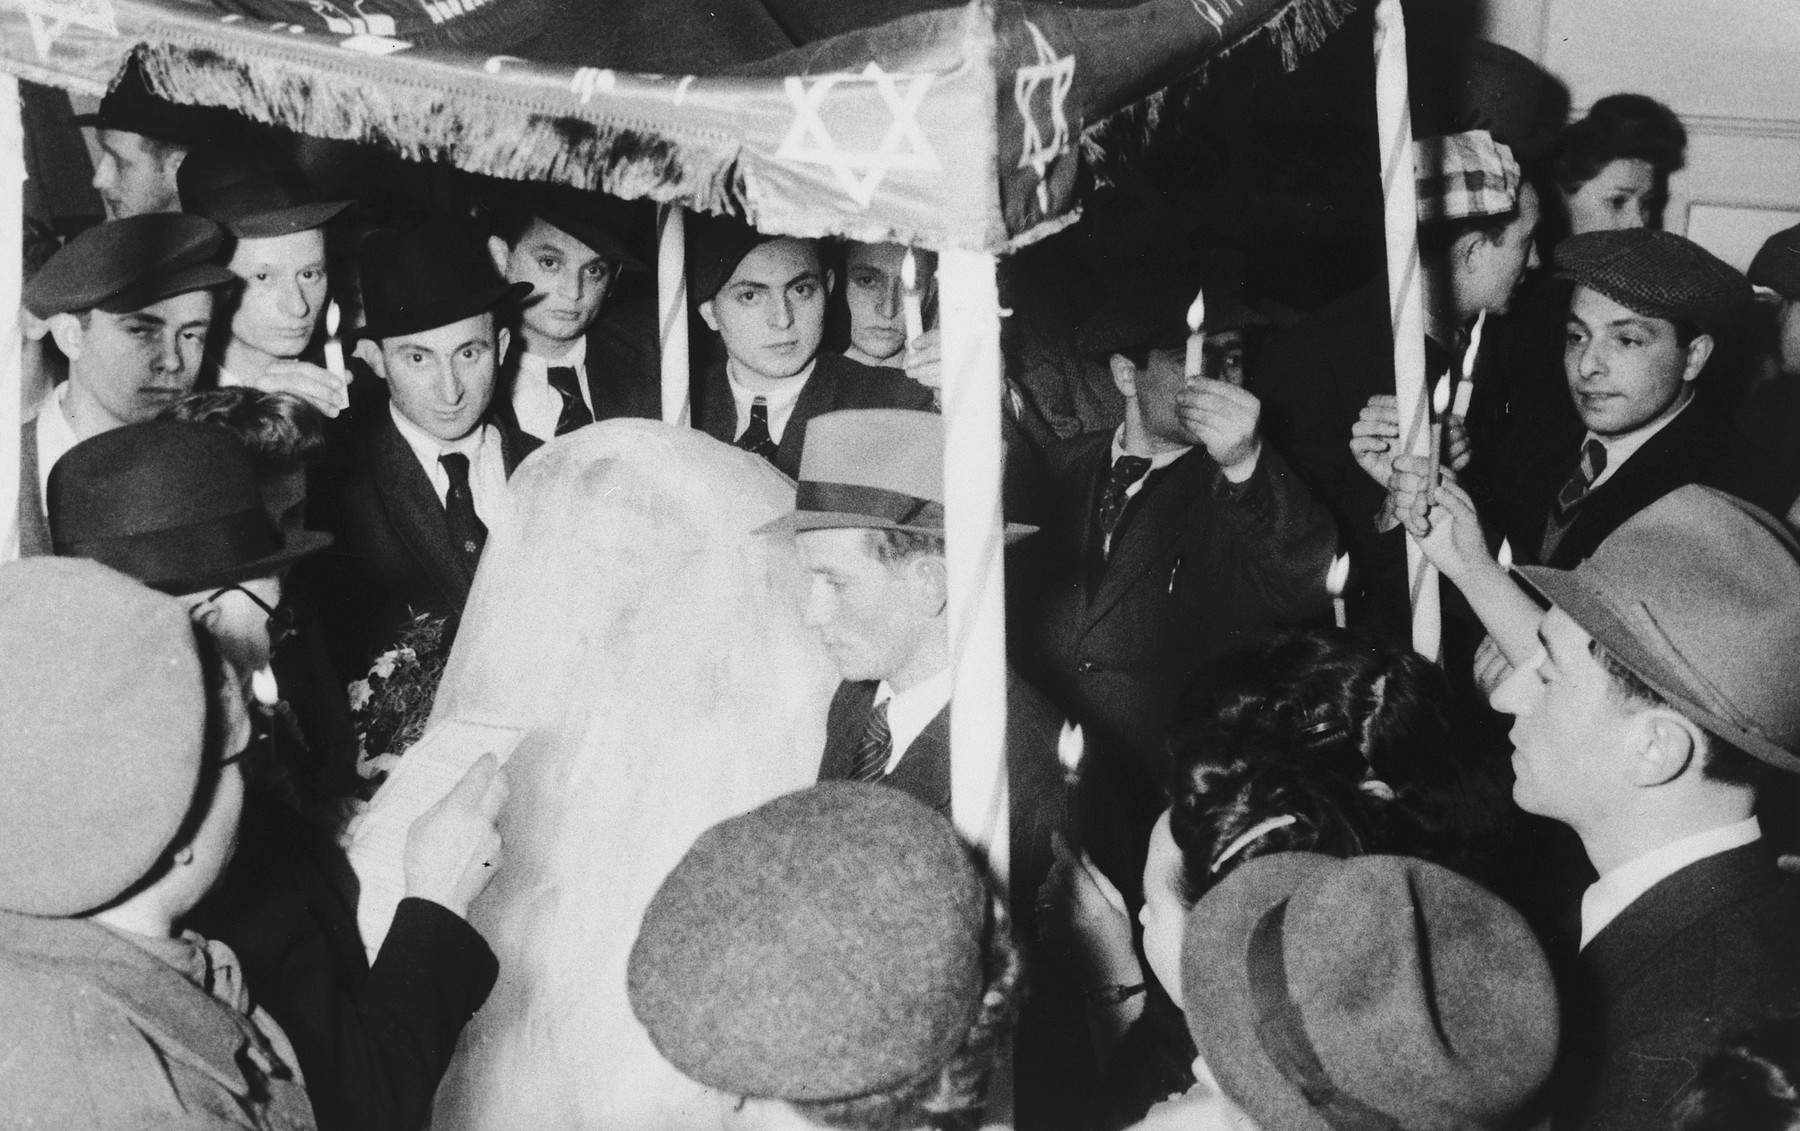 Bela Milstein and Jacob Gutman stand under a chuppa [wedding canopy] during their marriage ceremony in the Mittenwald displaced persons' camp.  This was the first Jewish wedding to be held there.